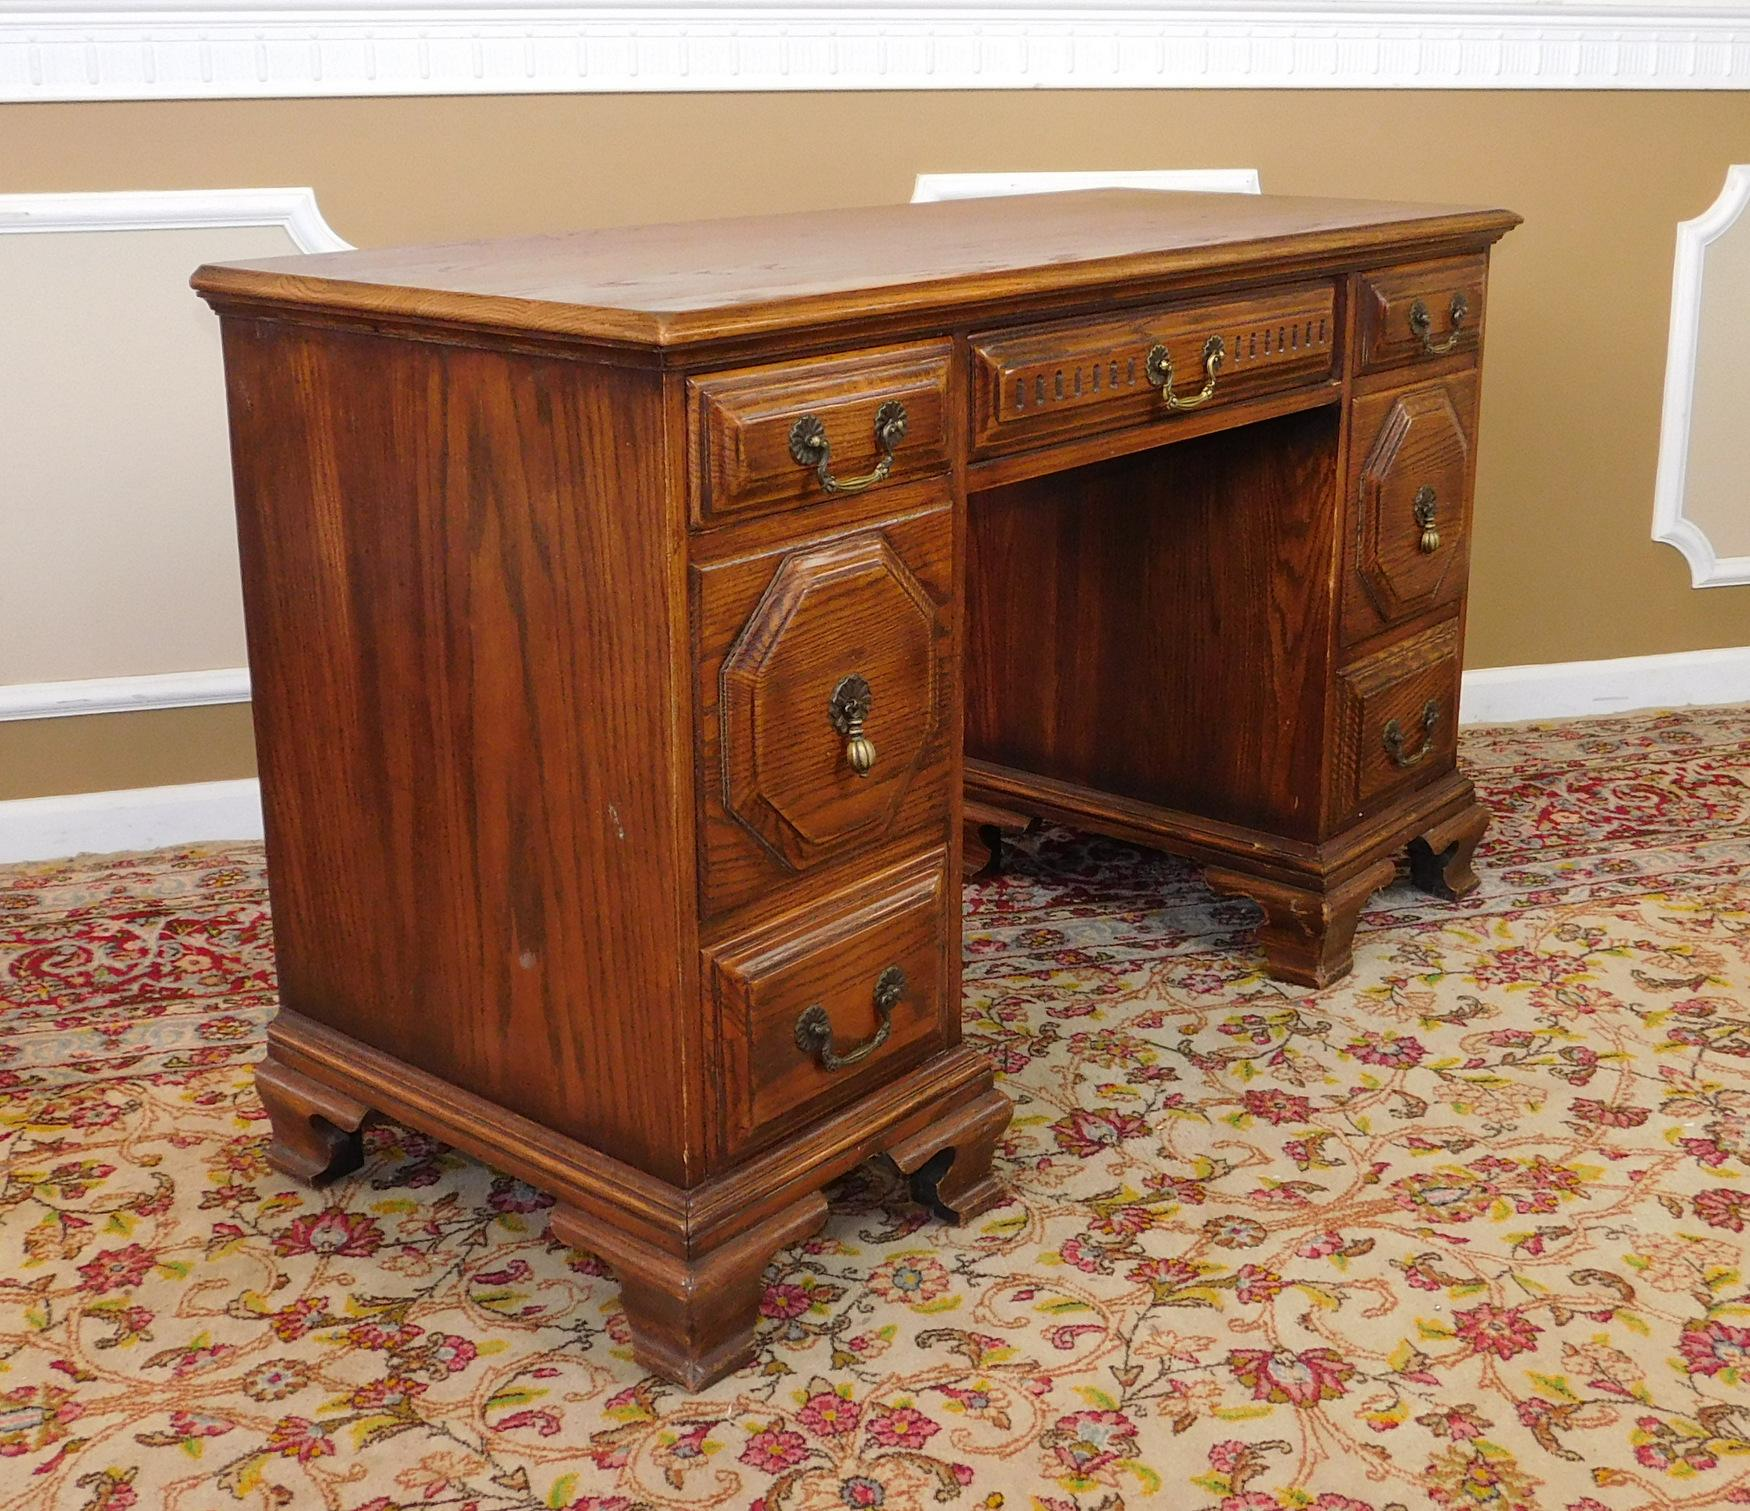 Incroyable This Is A Great Solid Oak Bedroom Desk Made By The Davis Cabinet Company,  1970s